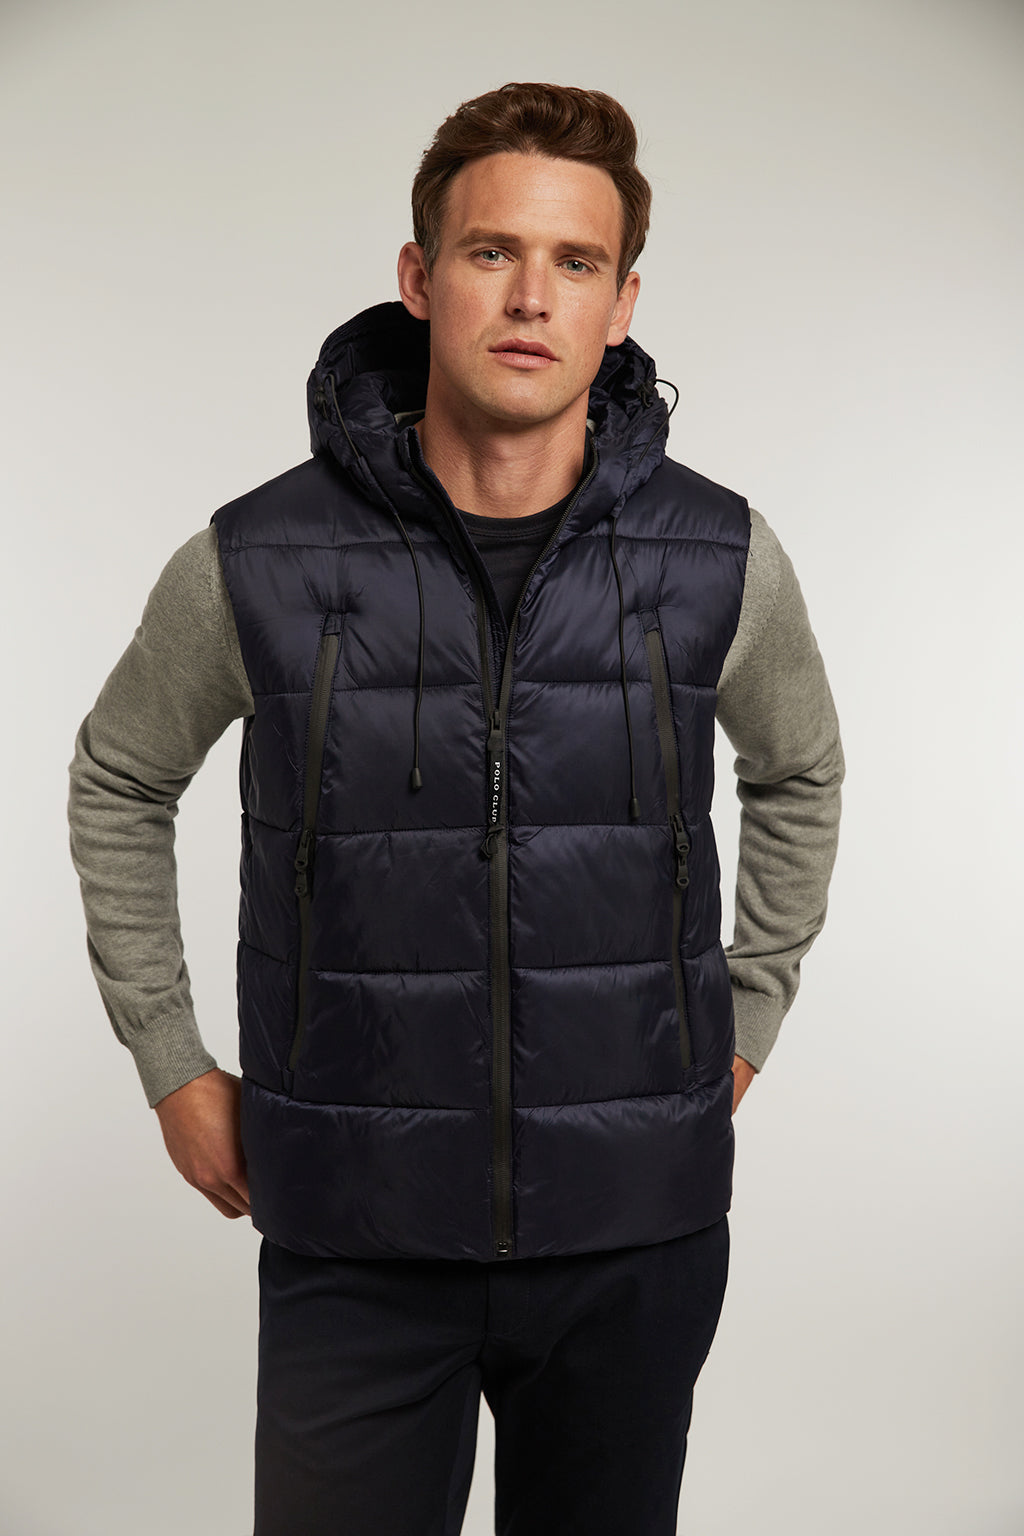 Navy blue quilted vest with hood and big pockets